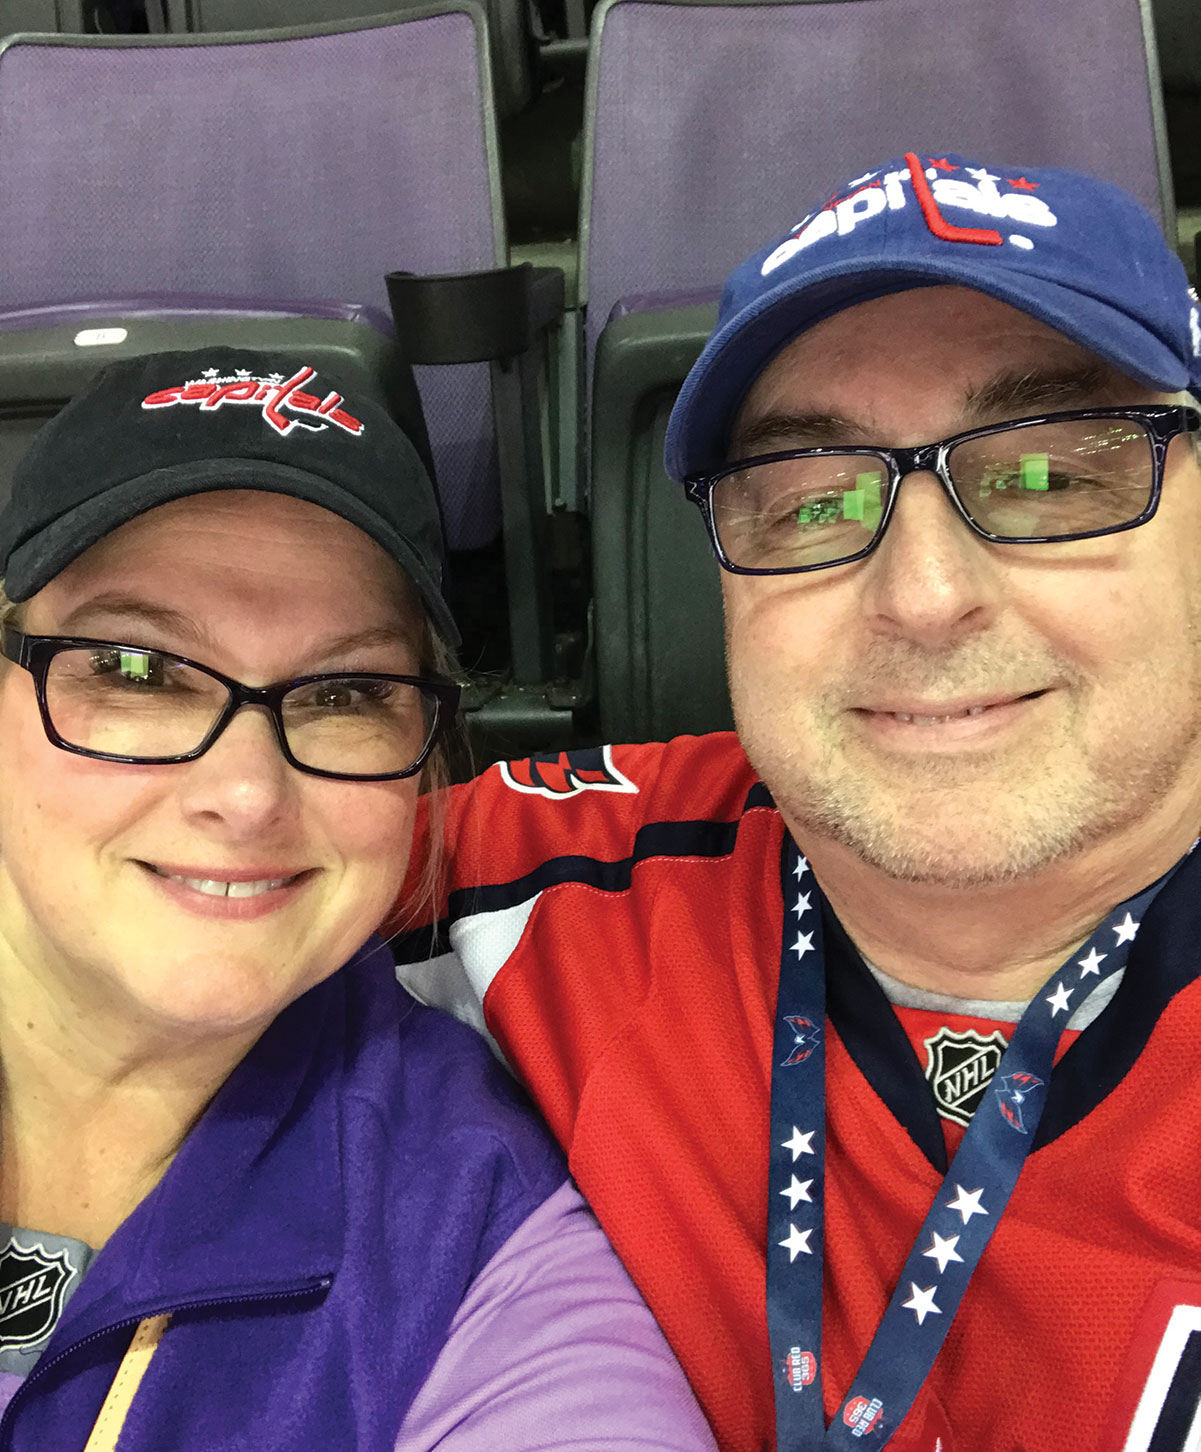 LaFlamme and with his wife, entrepreneur Carolyn Thompson, at a Stanley Cup playoff game — the two are longtime Washington Capitals fans.